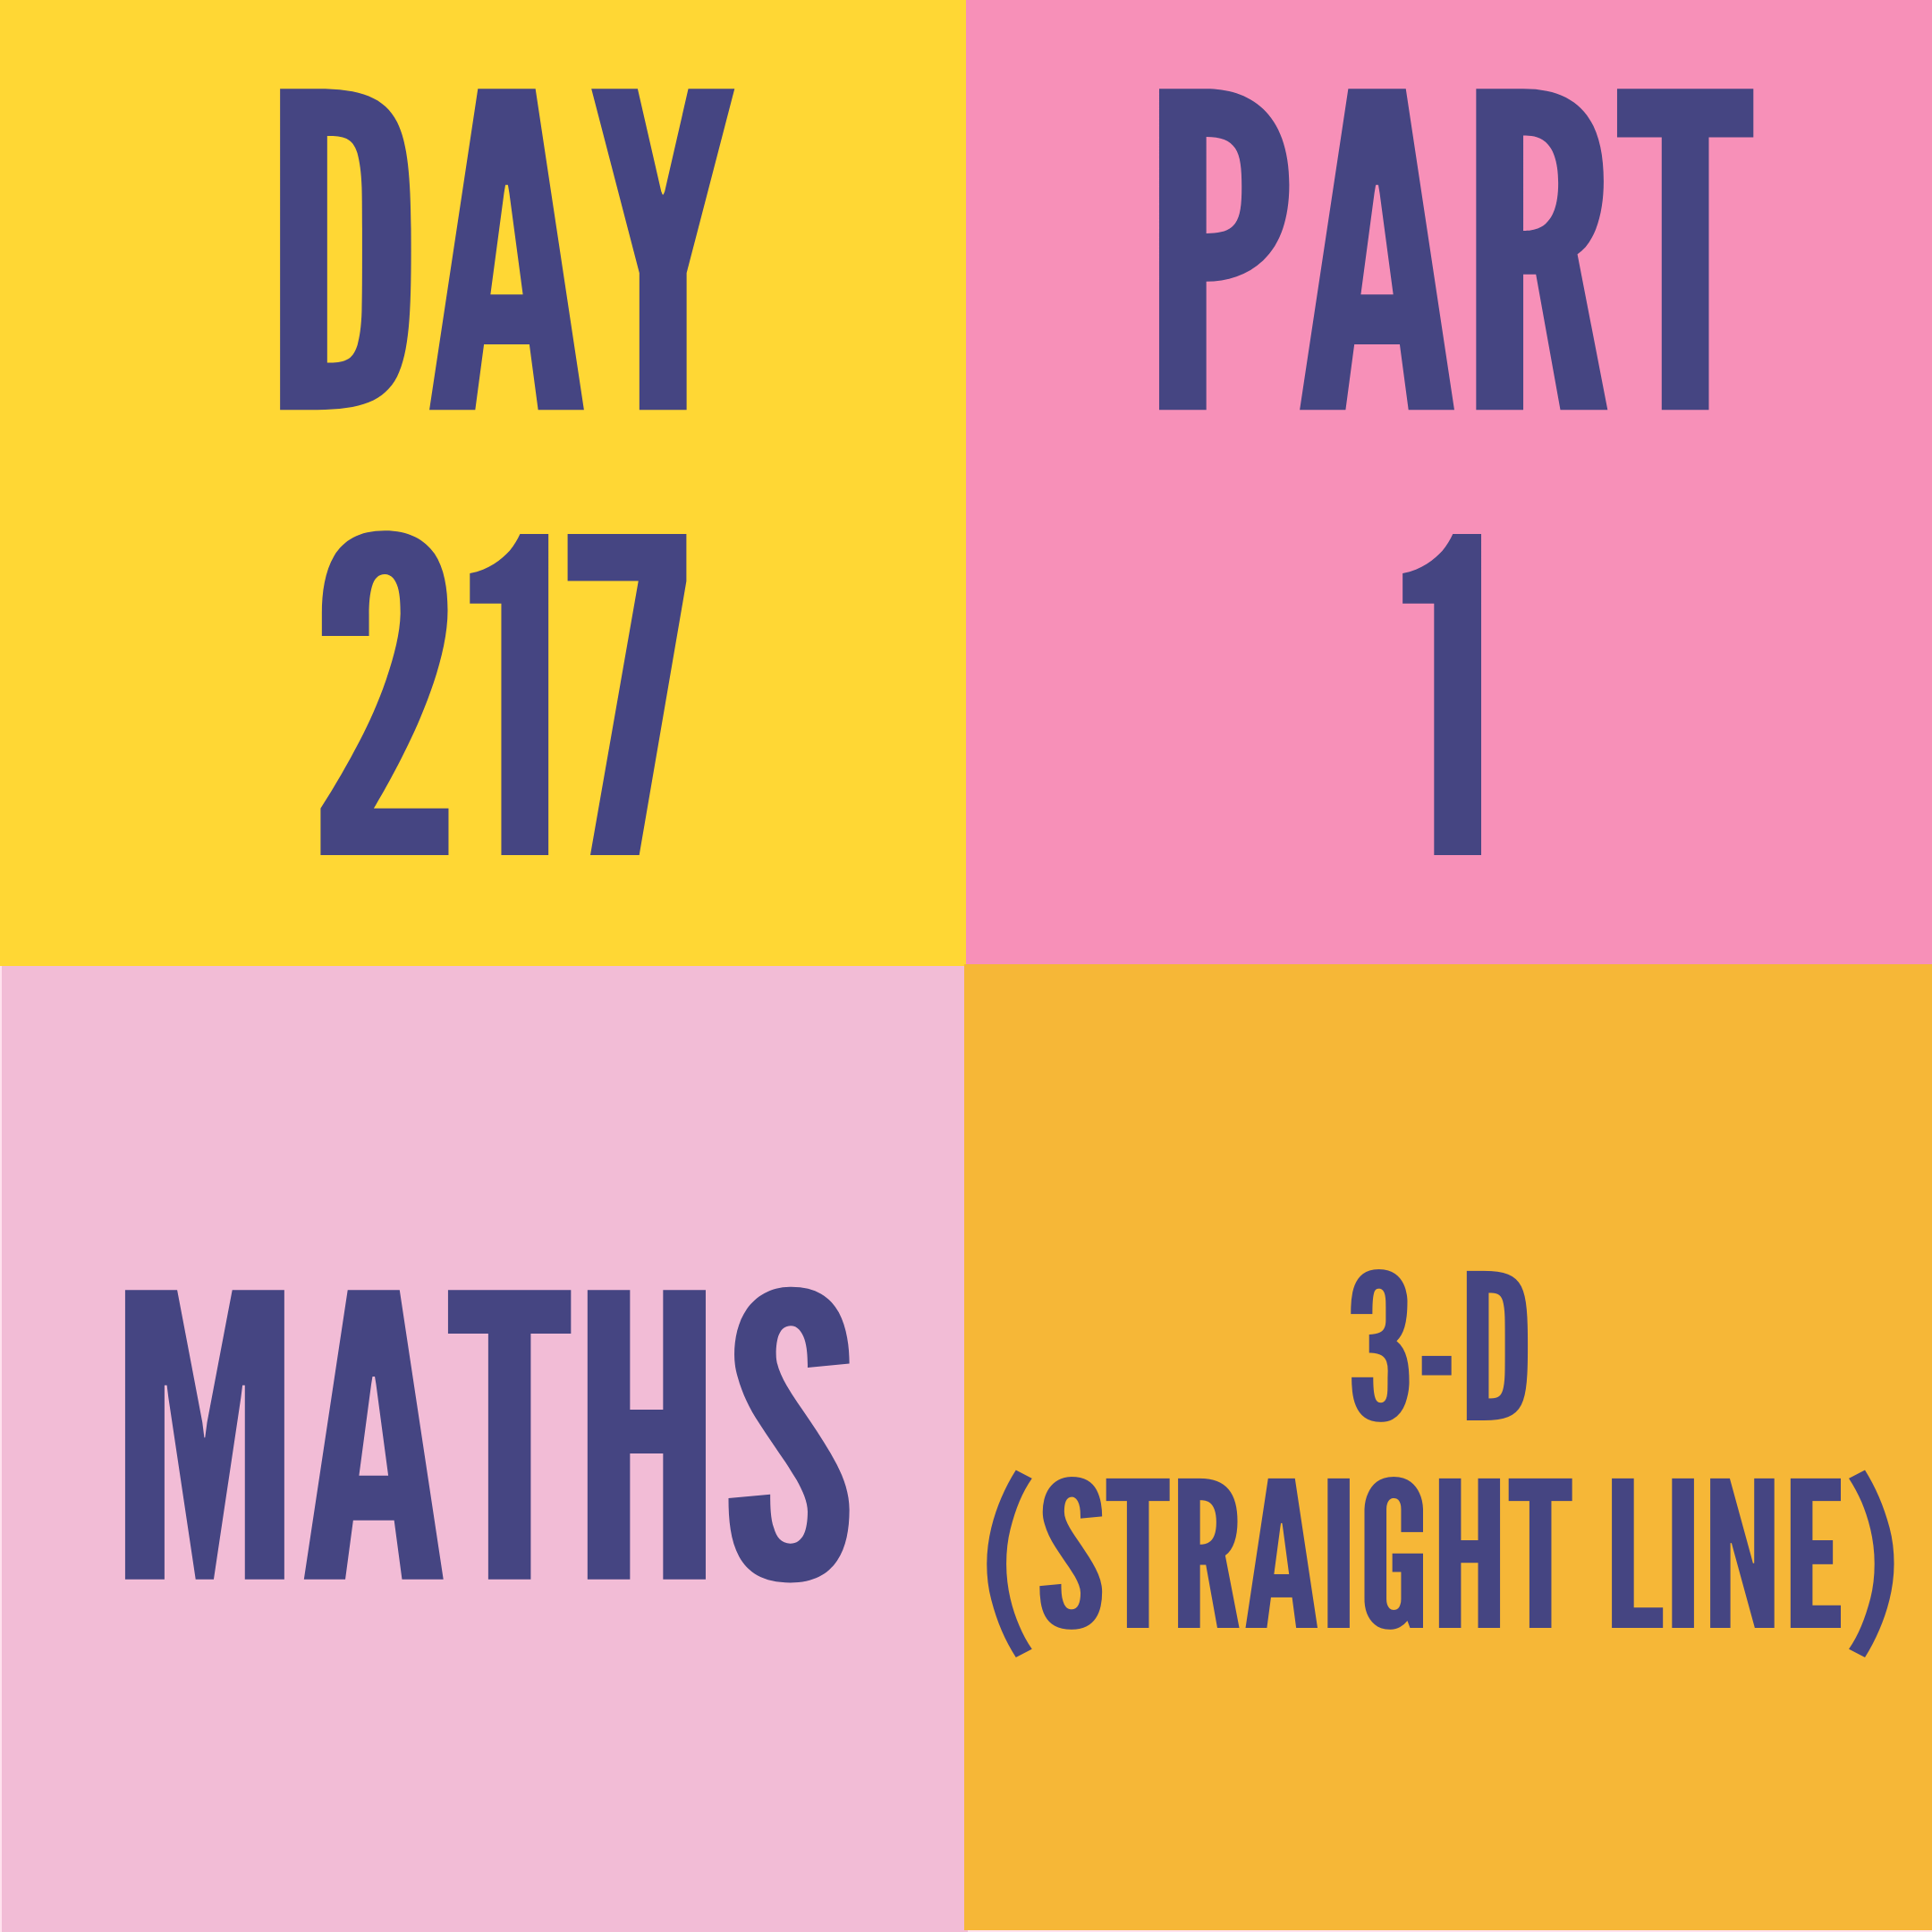 DAY-217 PART-1 3-D (STRAIGHT LINE)